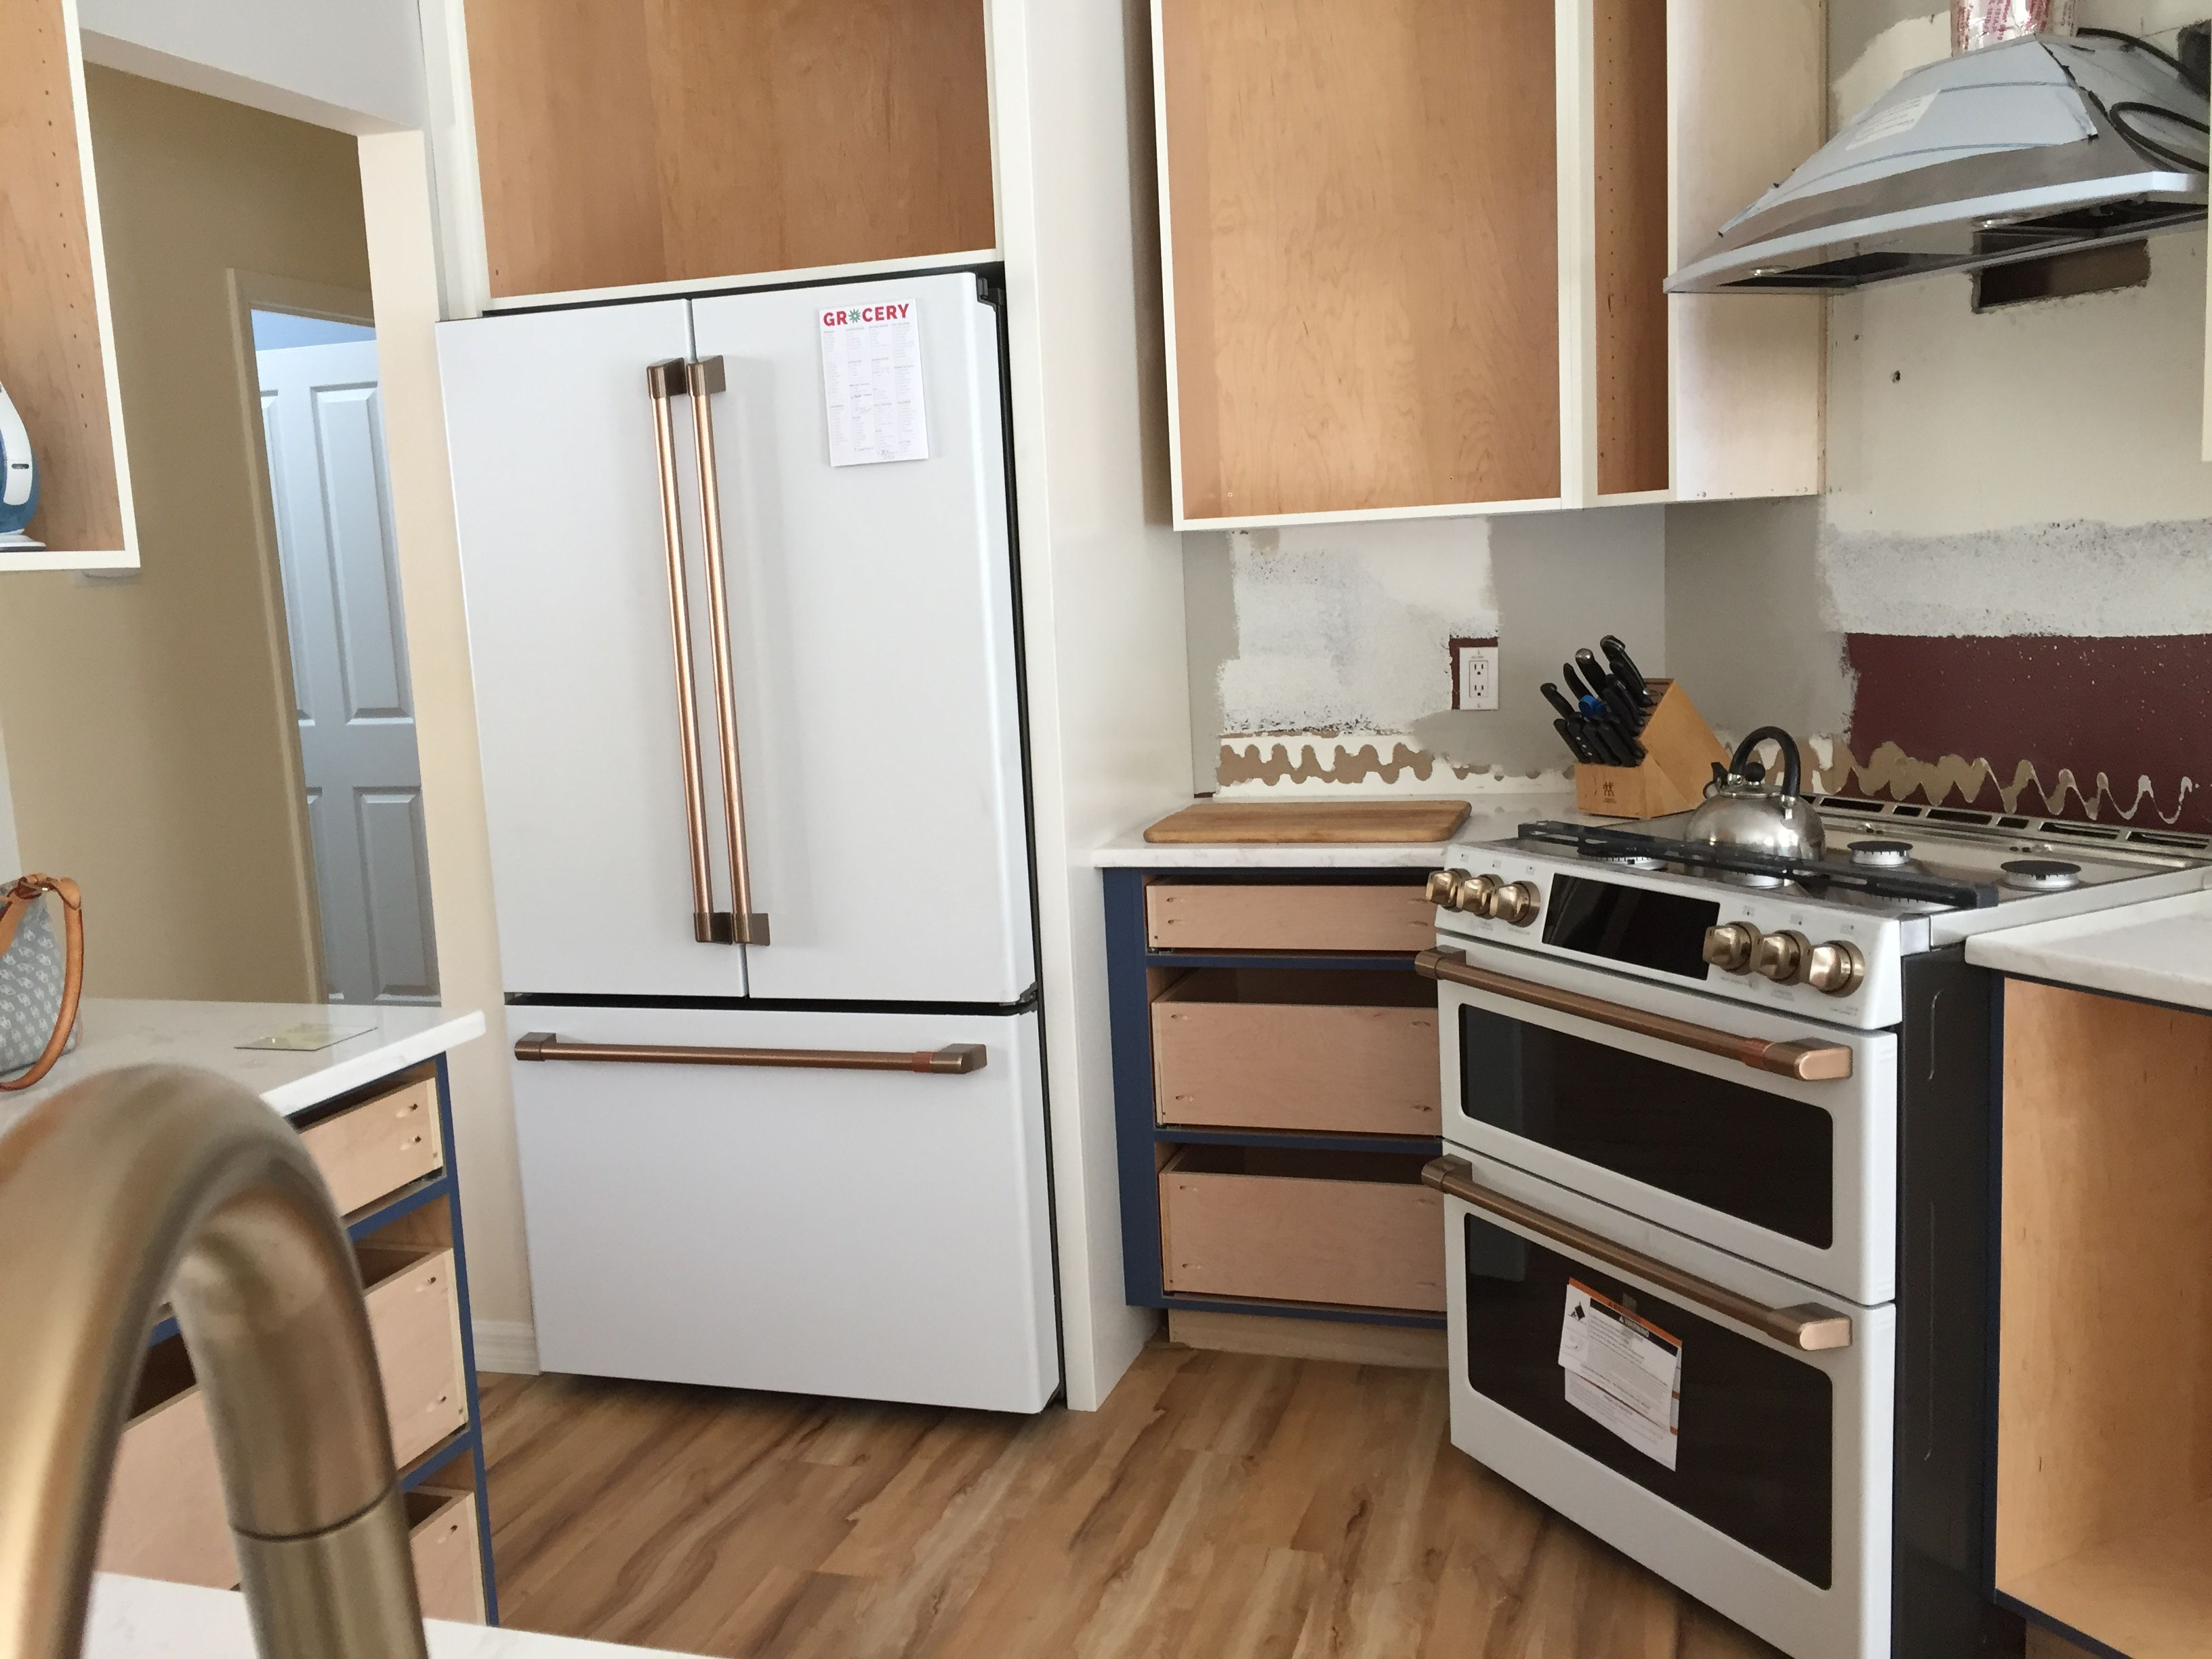 new ge café appliances delivered almost done updated kitchen ge cafe appliances home on kitchen appliances id=86630